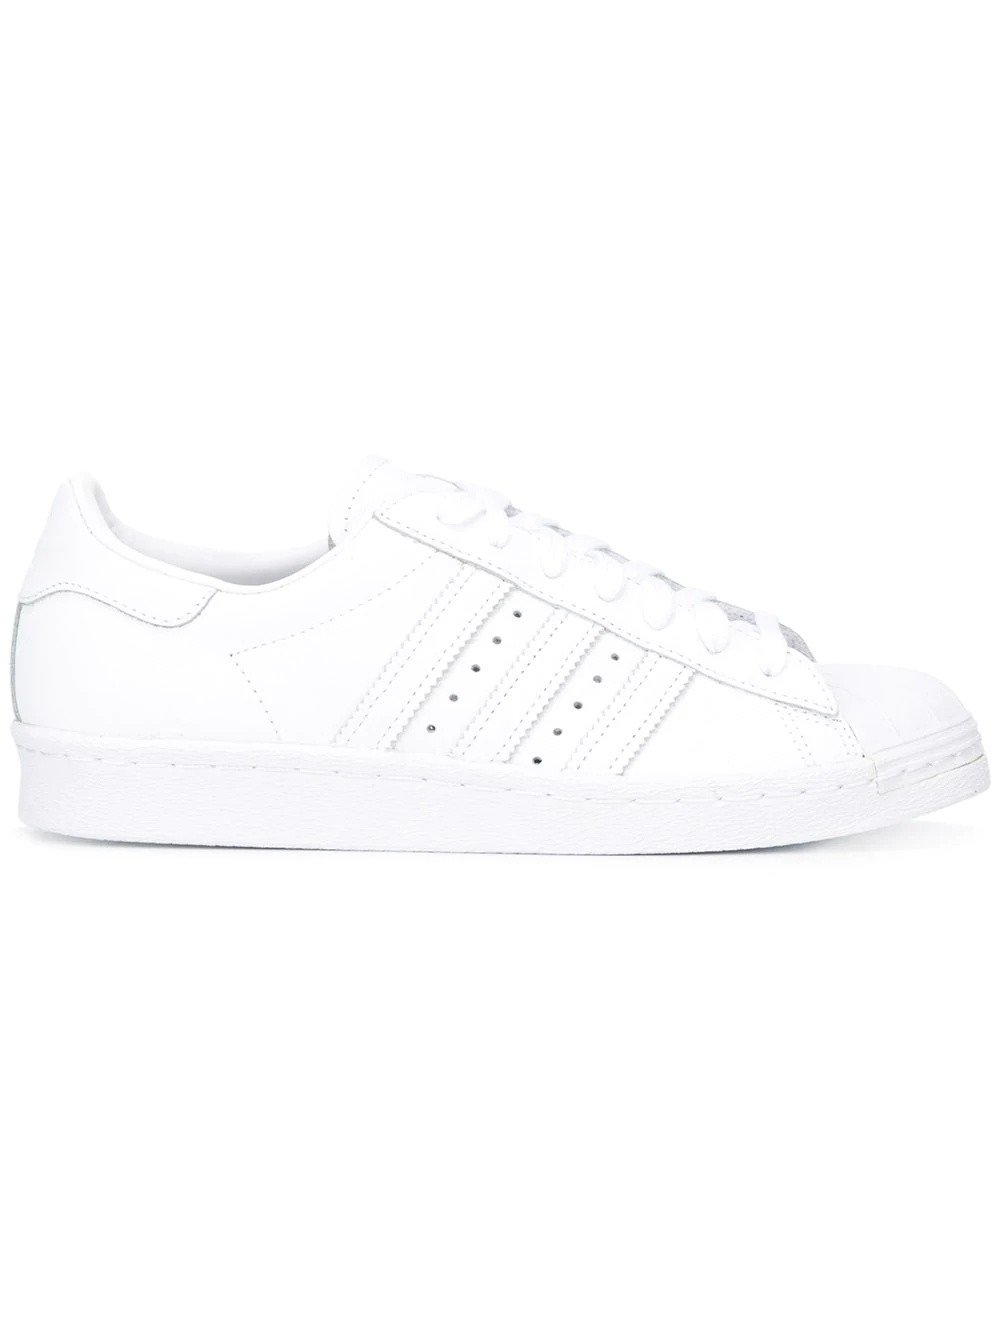 Adidas Originals Superstar 80s | Blanche | Sneakers | S79443